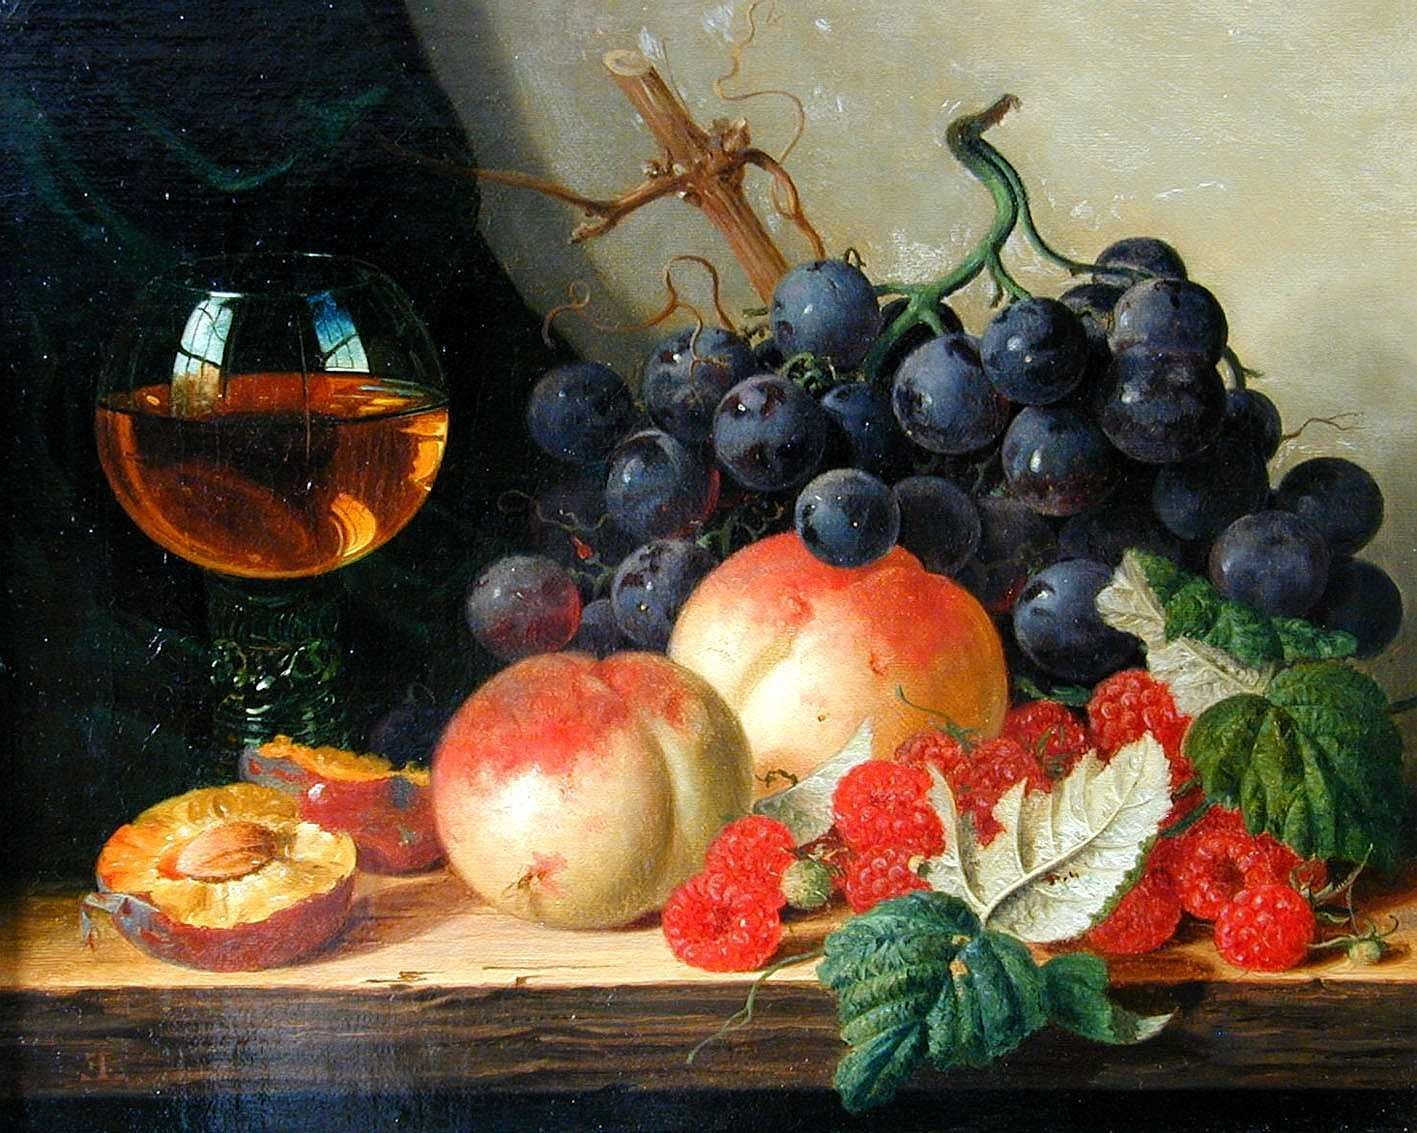 Edward ladell british 1821 1886 a still life of black grapes peaches raspberries a wine glass on a wooden ledge